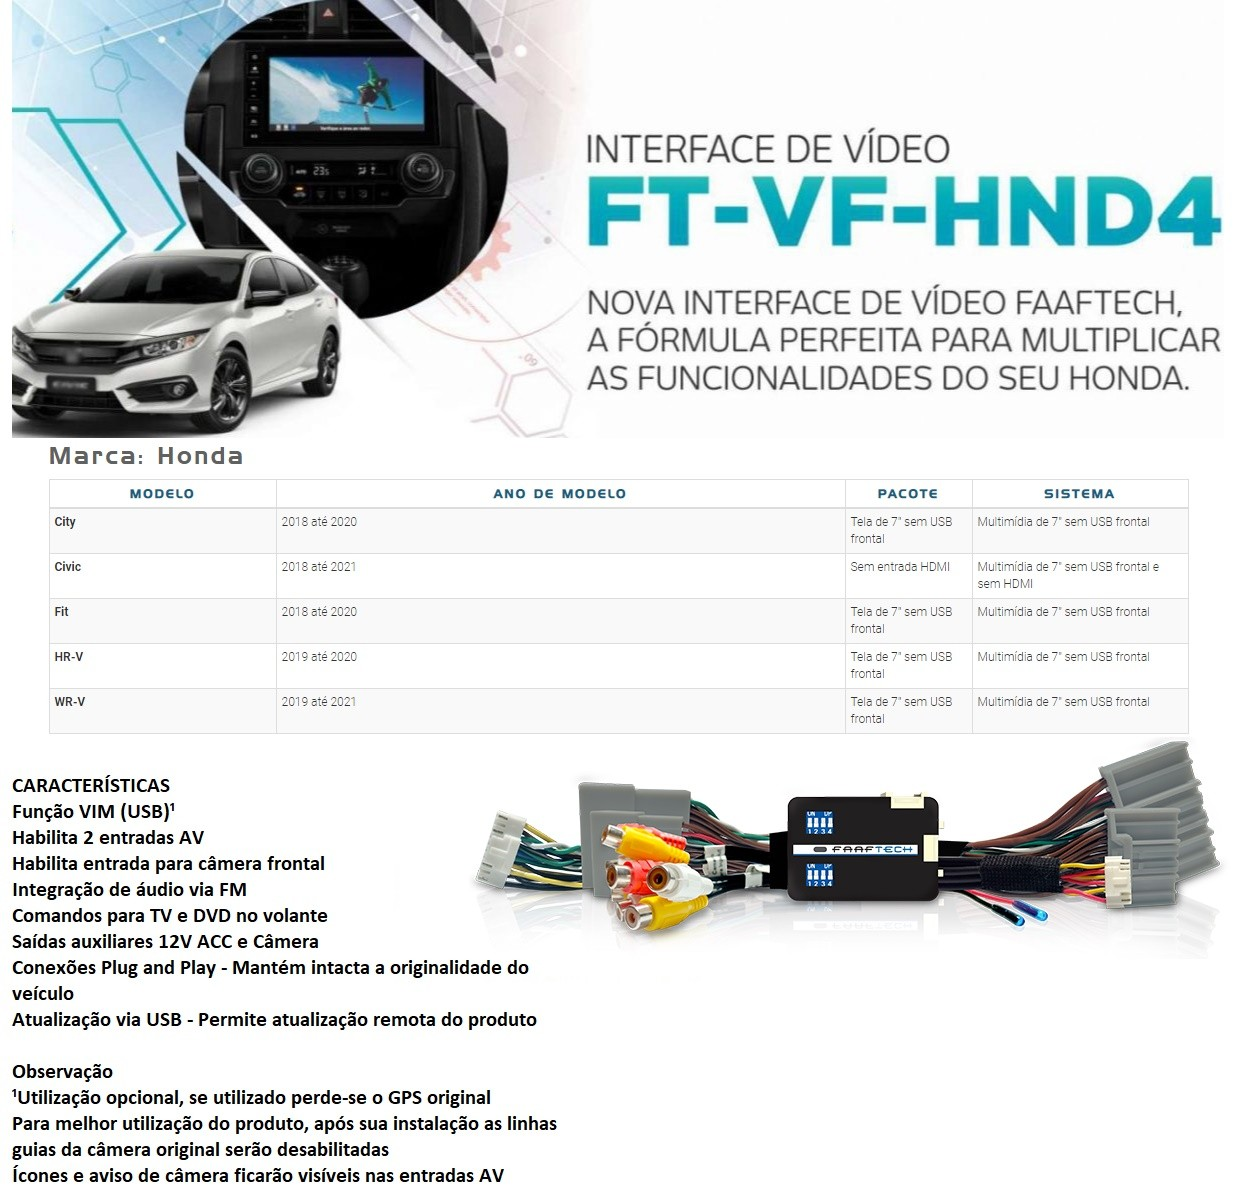 Desbloqueio de Multimídia Faaftech FT-VF-HND4 para Honda Civic City Fit Hrv Wrv